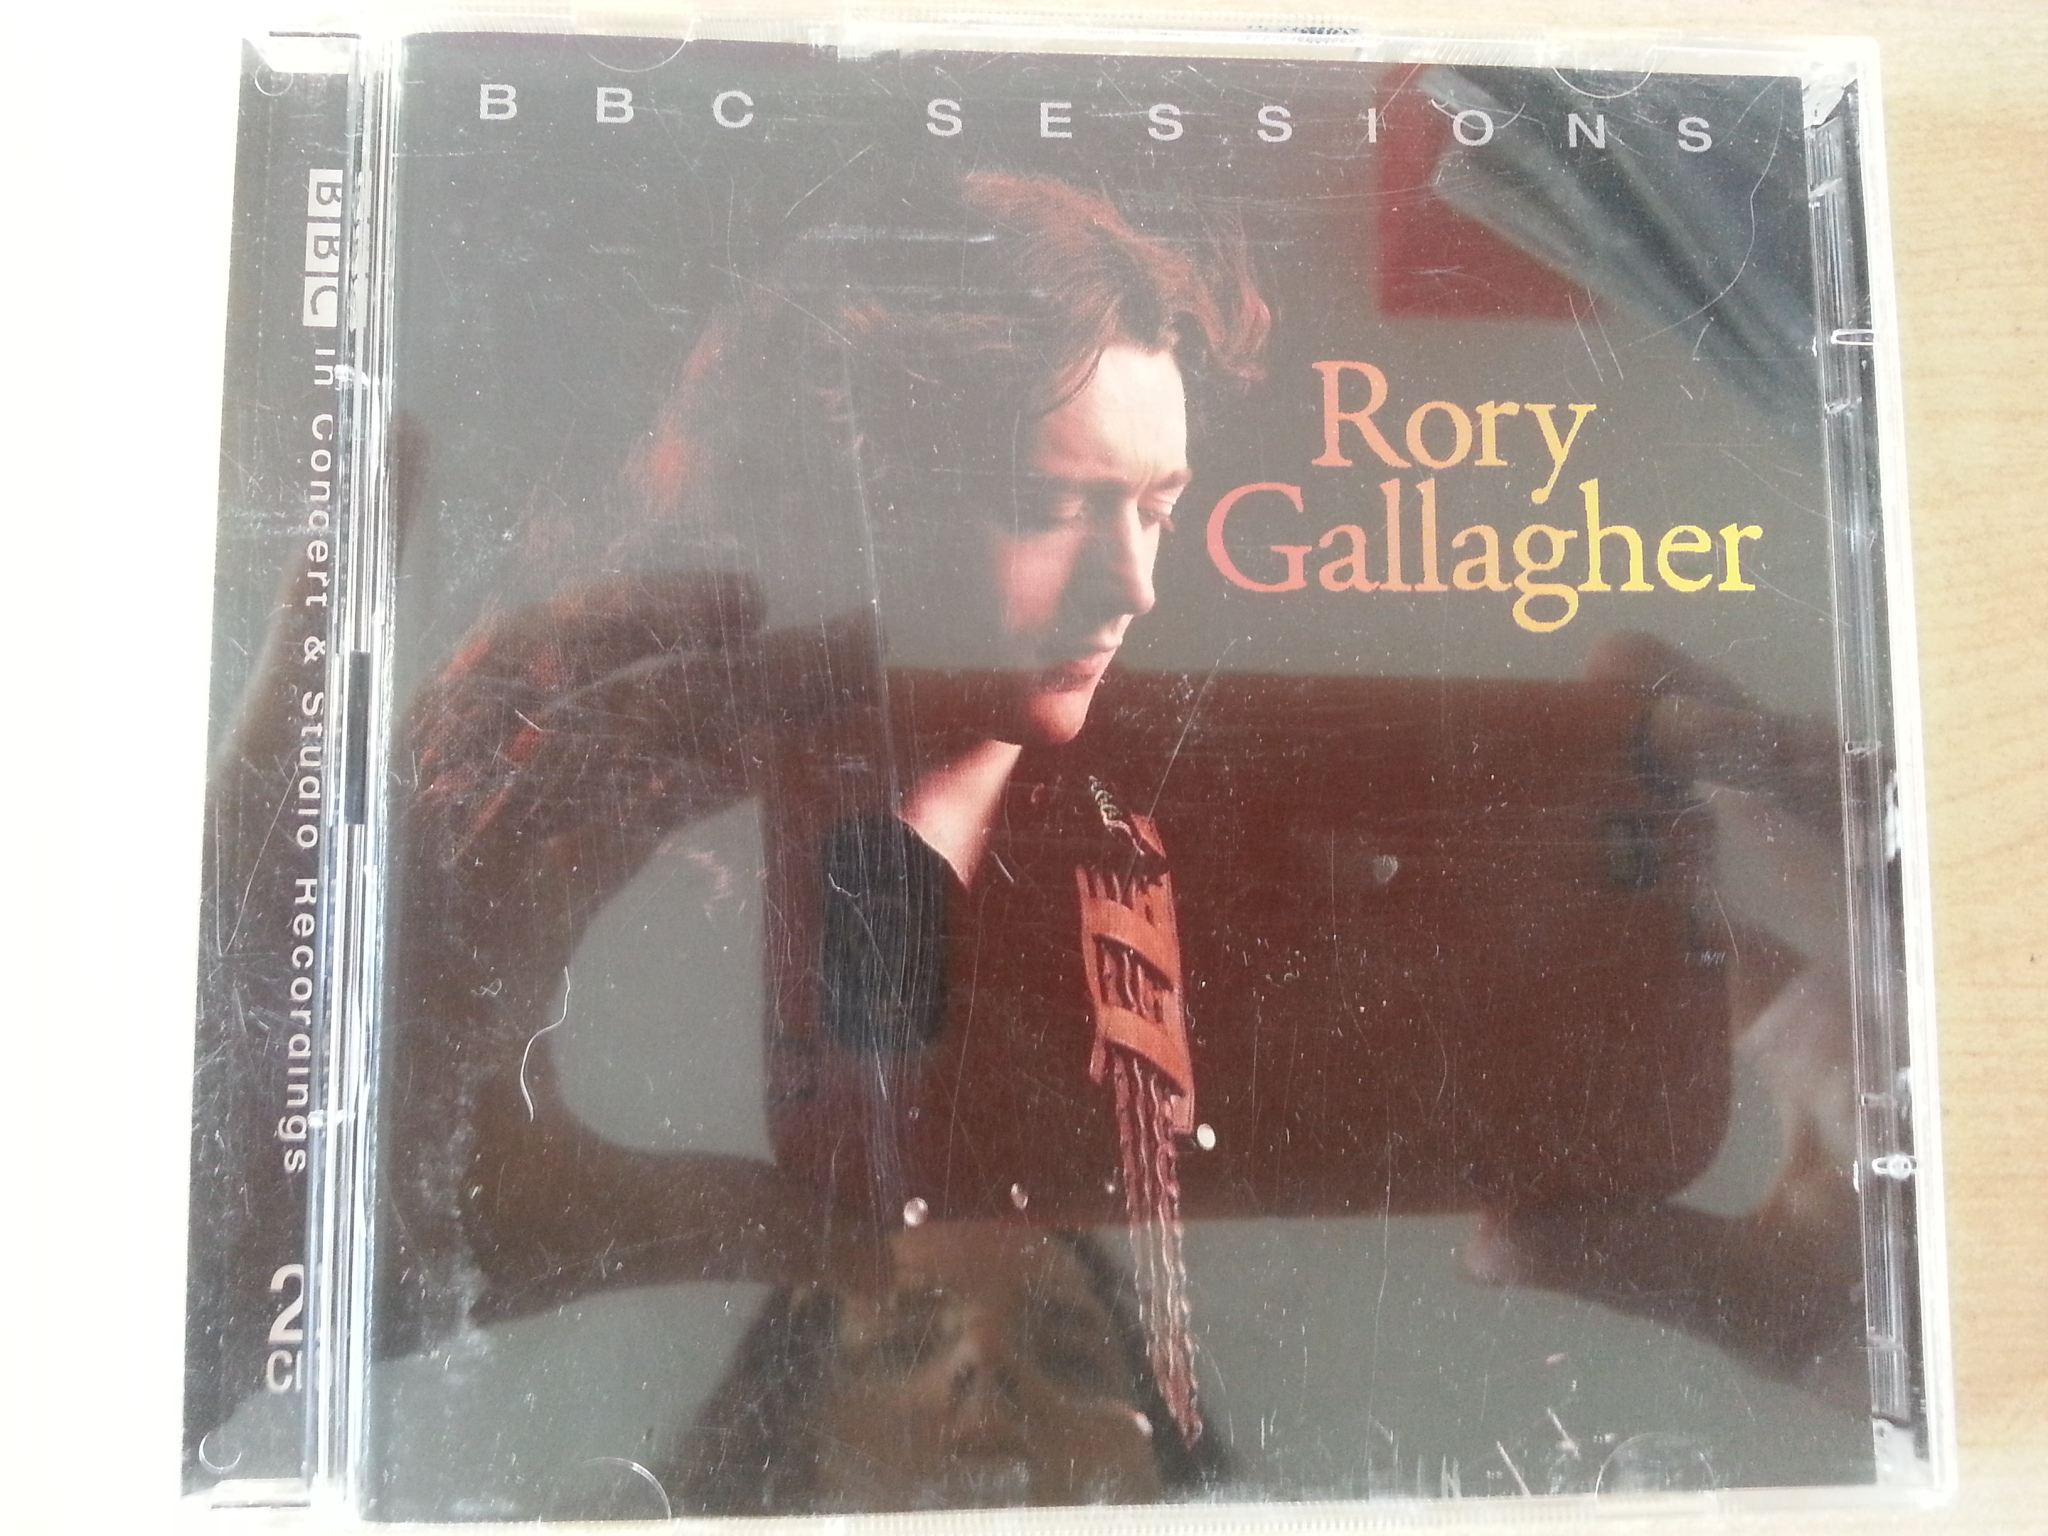 CD: Rory Gallagher - BBC Session  kostenlos